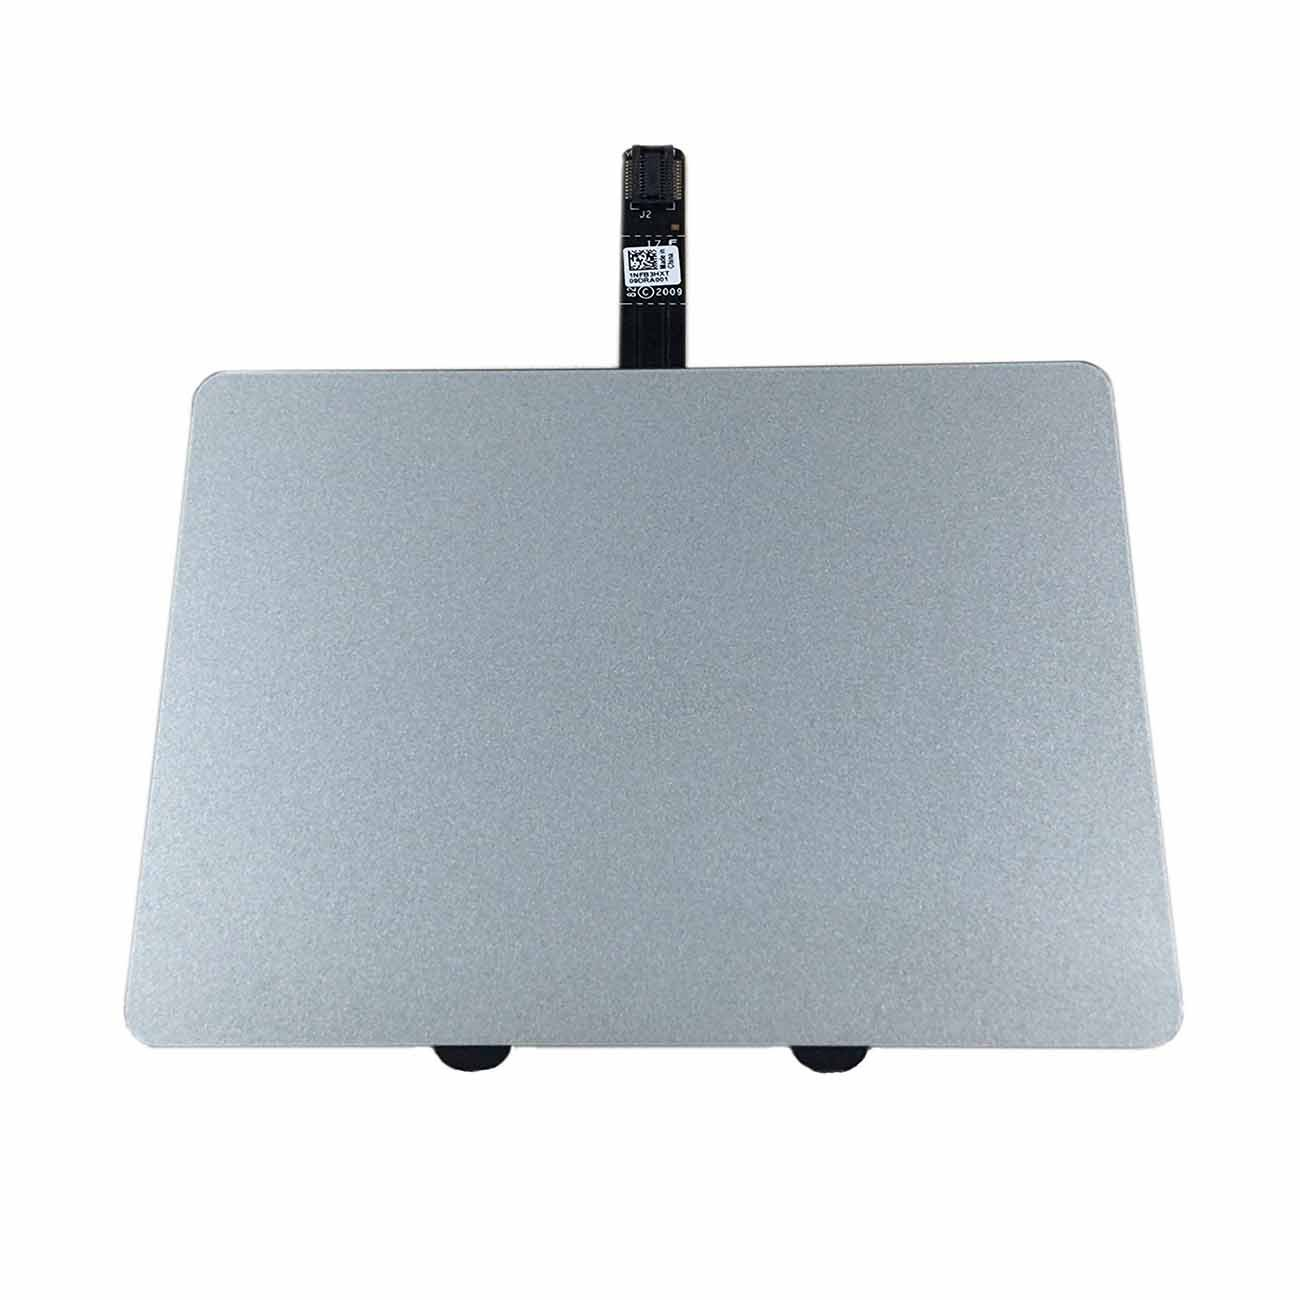 Willhom (922-9063, 922-9525, 922-9773) Replacement Kit Trackpad with Cable for MacBook Pro 13'' A1278 (2009, 2010, 2011, 2012) by Willhom